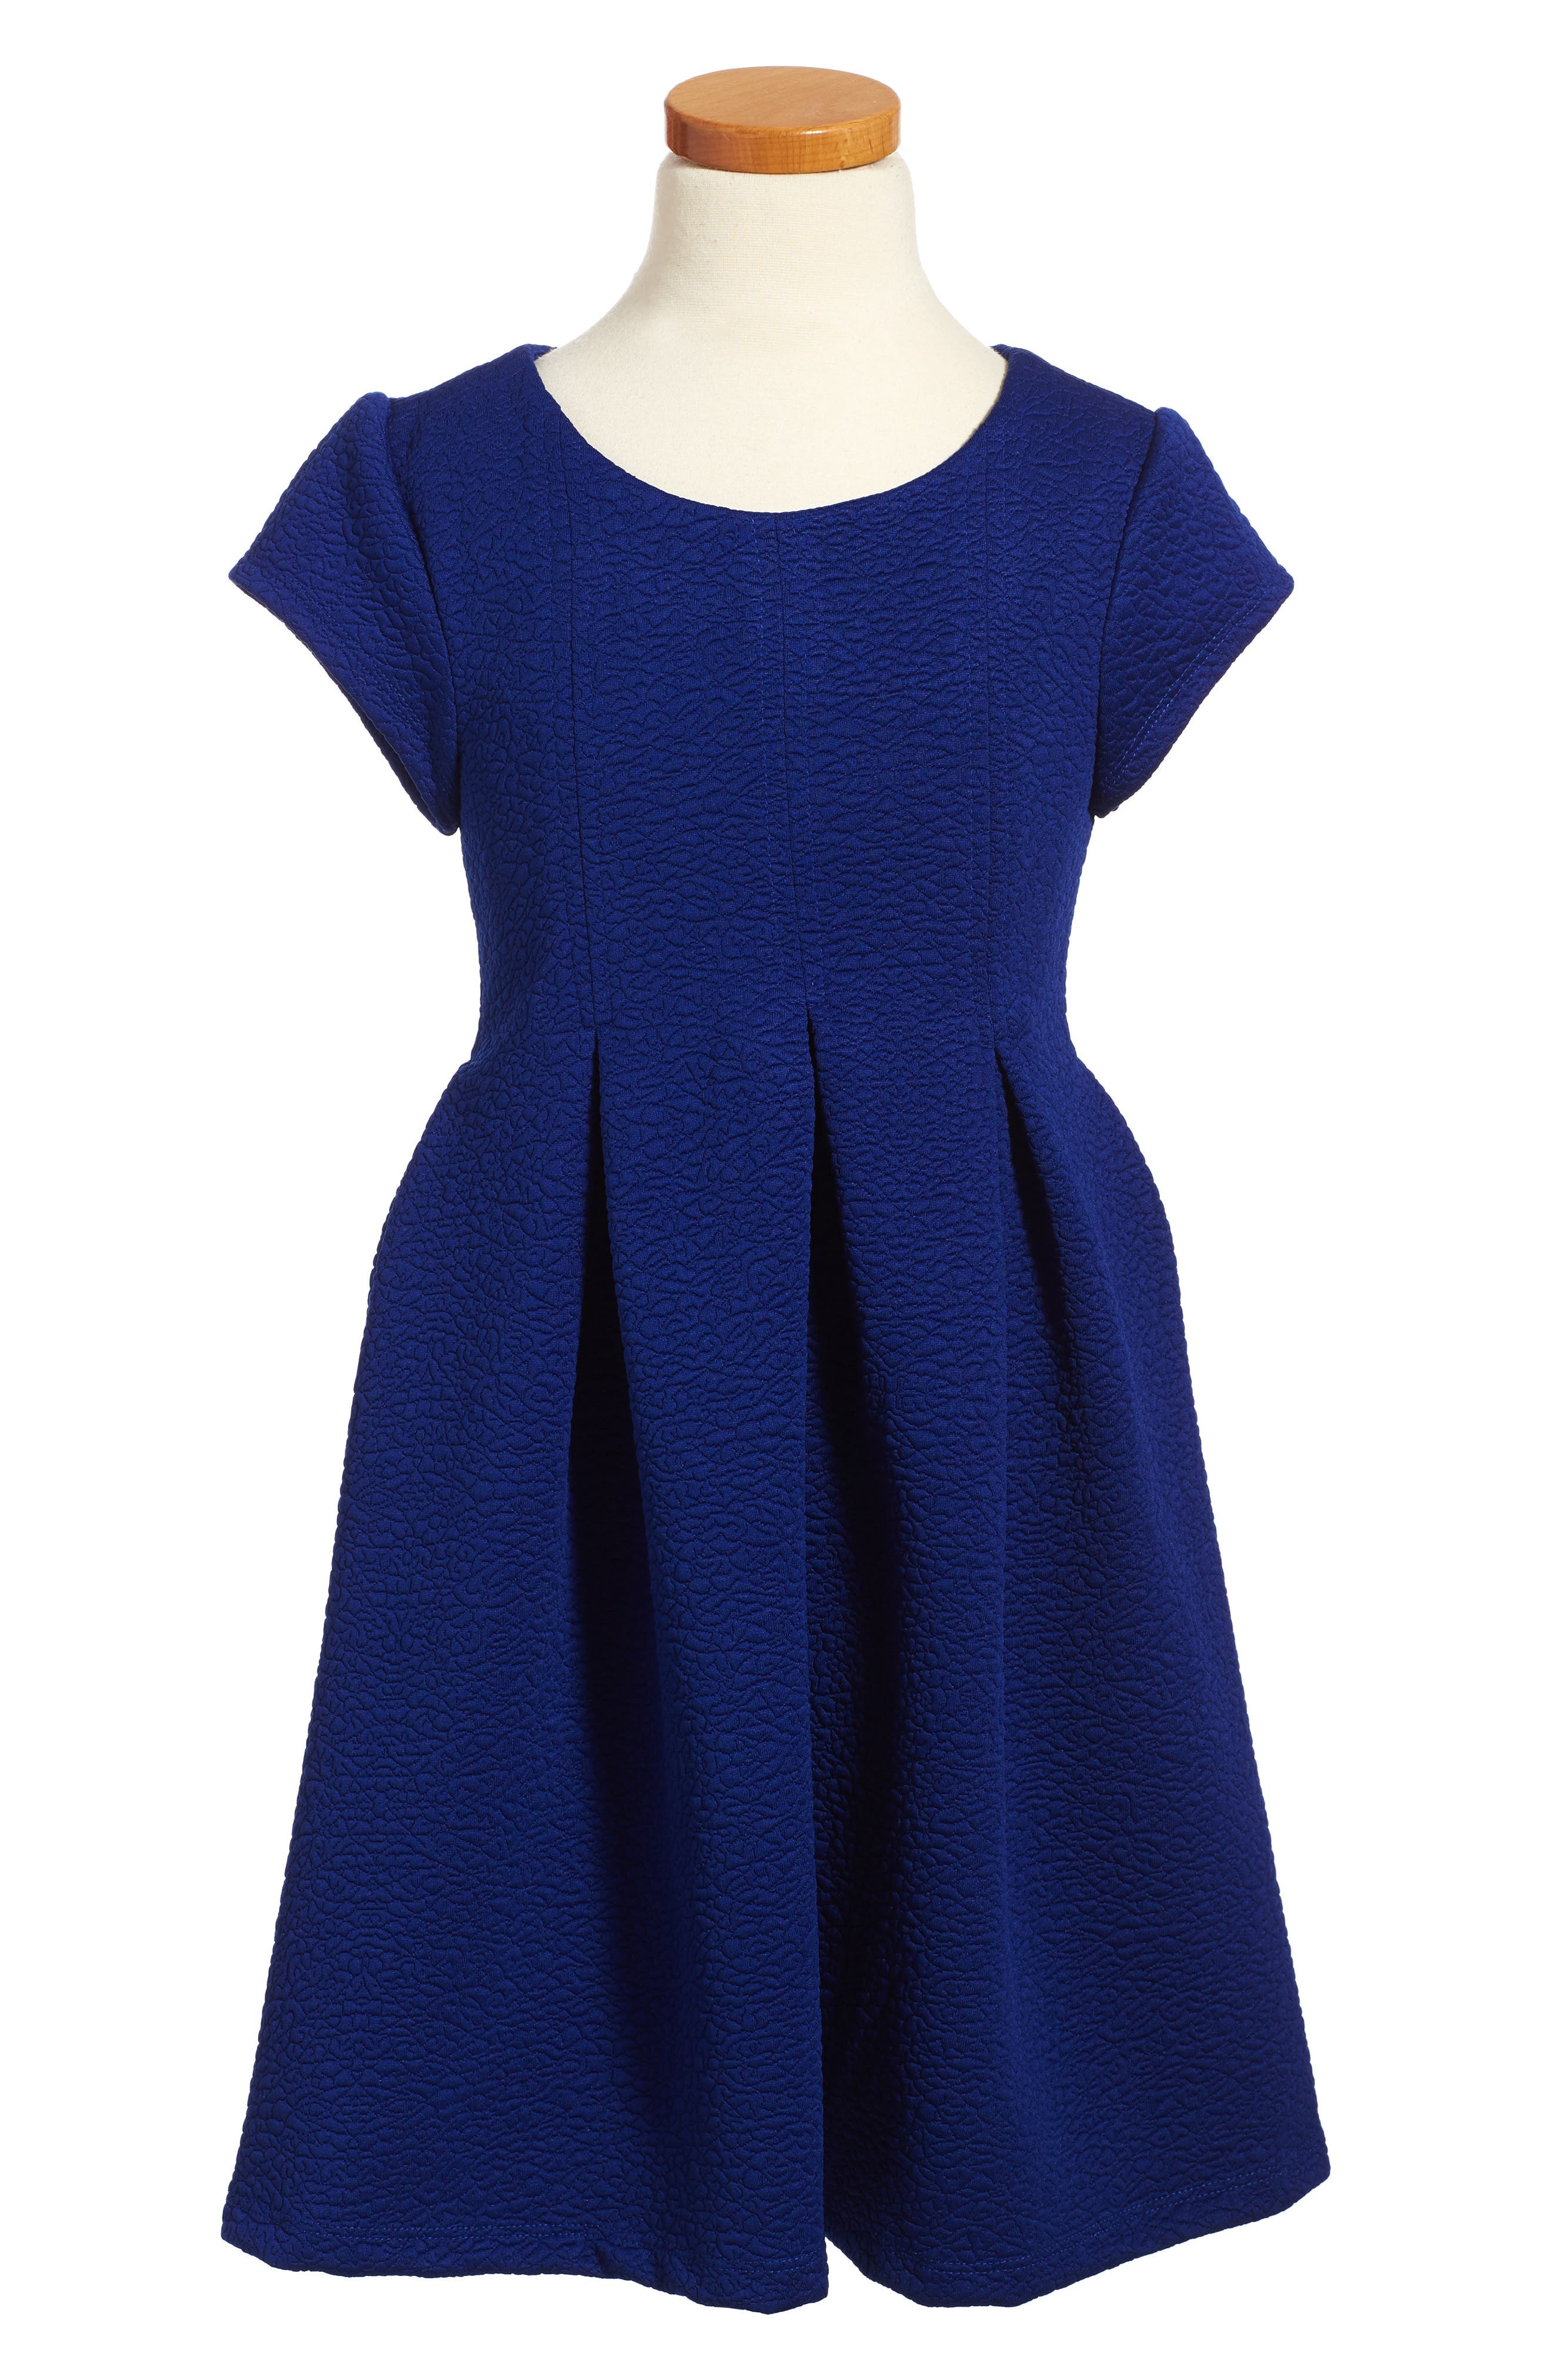 Pleated Knit Dress,                         Main,                         color,